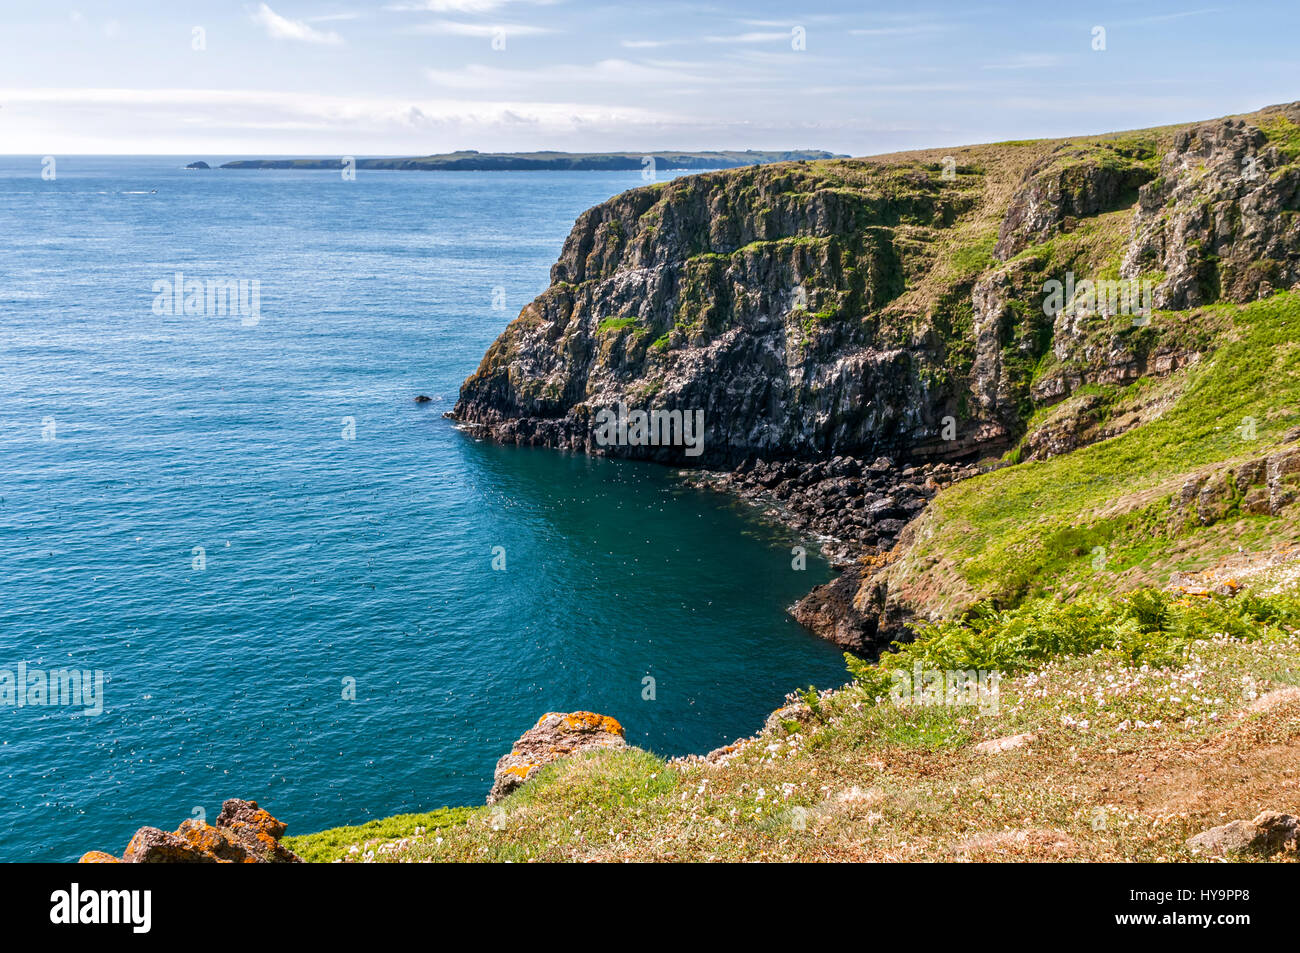 Seabird colony on Lundy off the coast of the UK Stock Photo